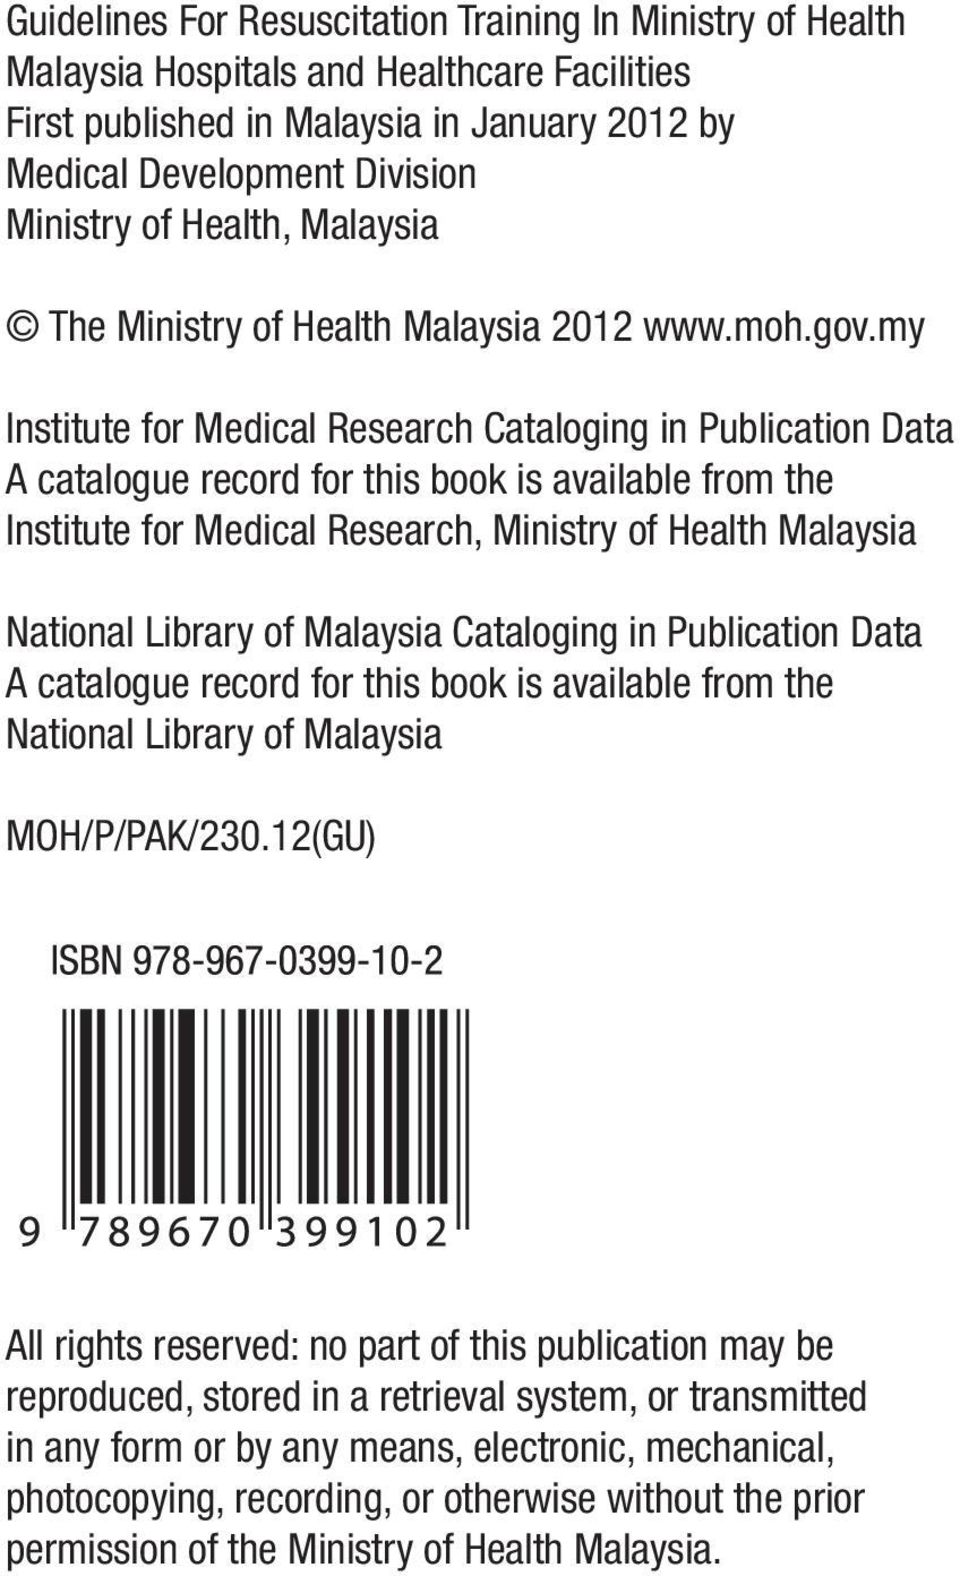 my Institute for Medical Research Cataloging in Publication Data A catalogue record for this book is available from the Institute for Medical Research, Ministry of Health Malaysia National Library of